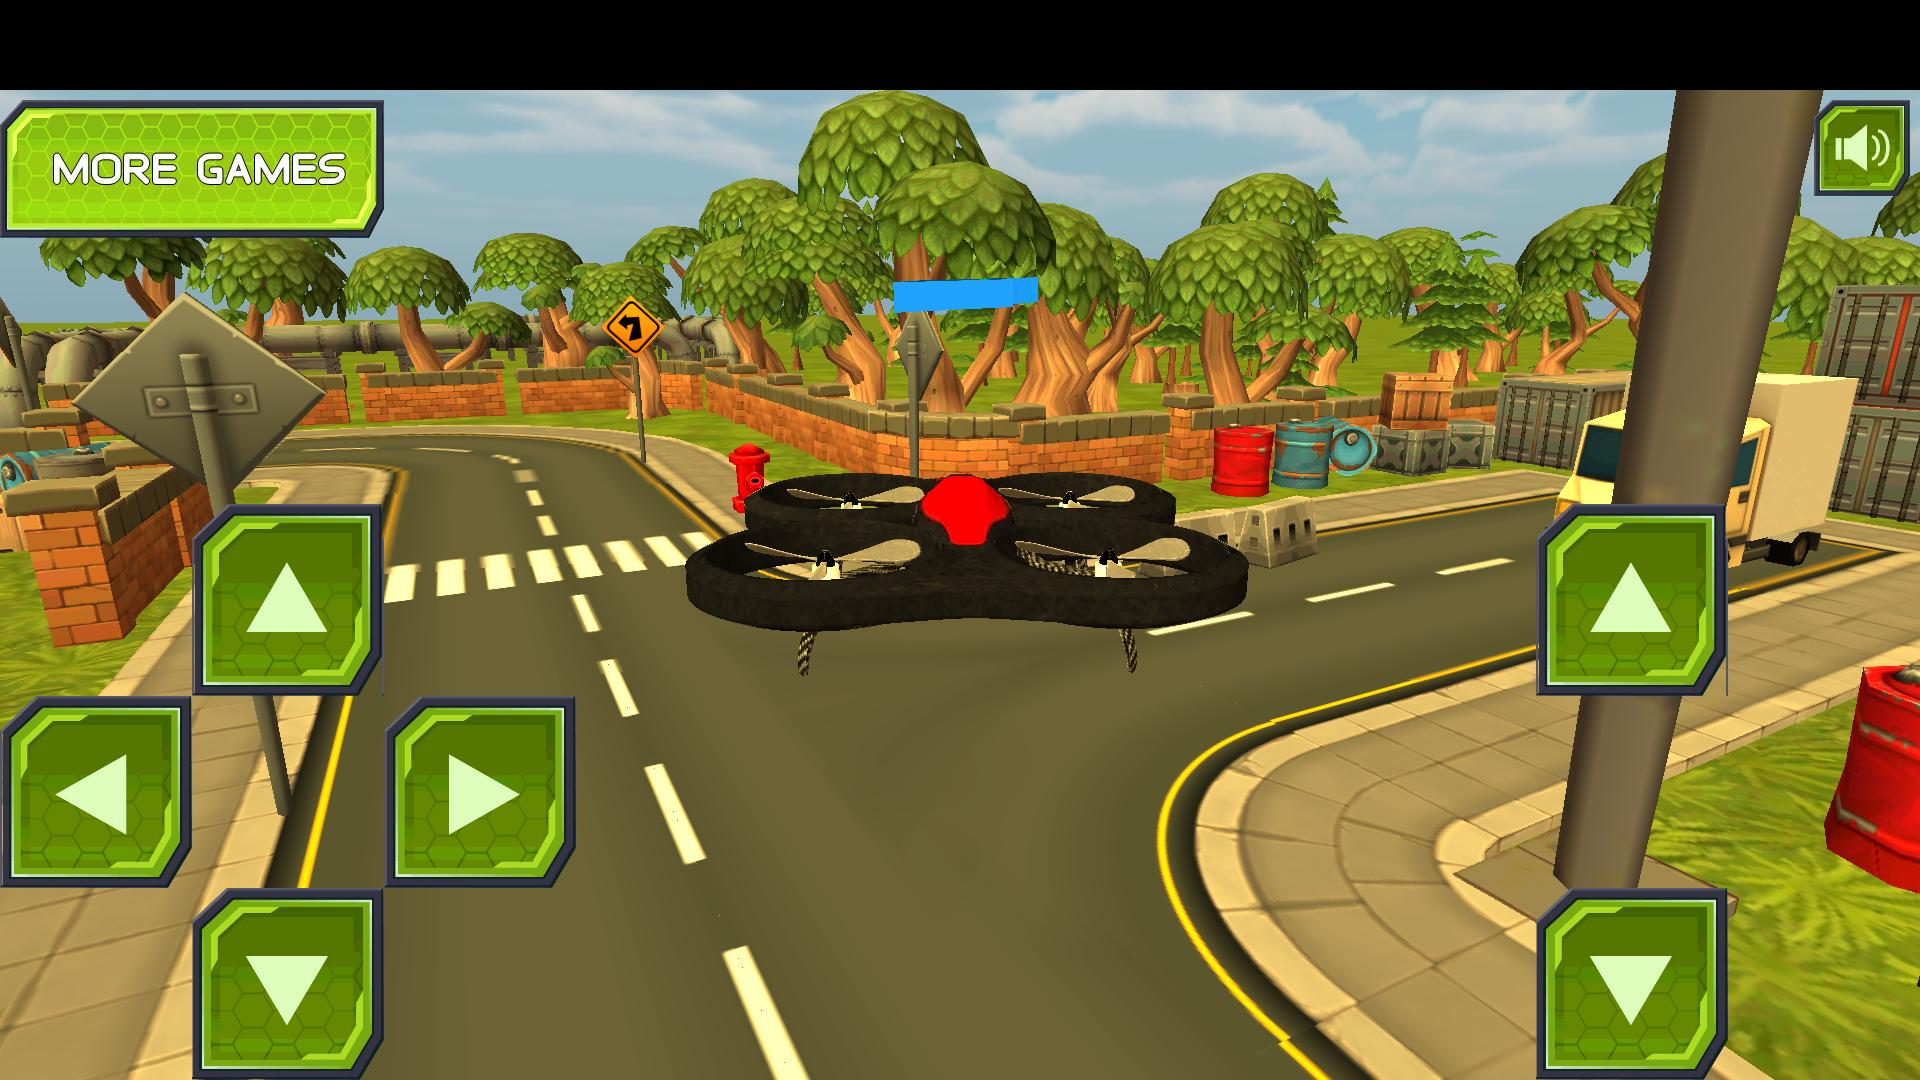 Real Drone Simulation for Android - APK Download